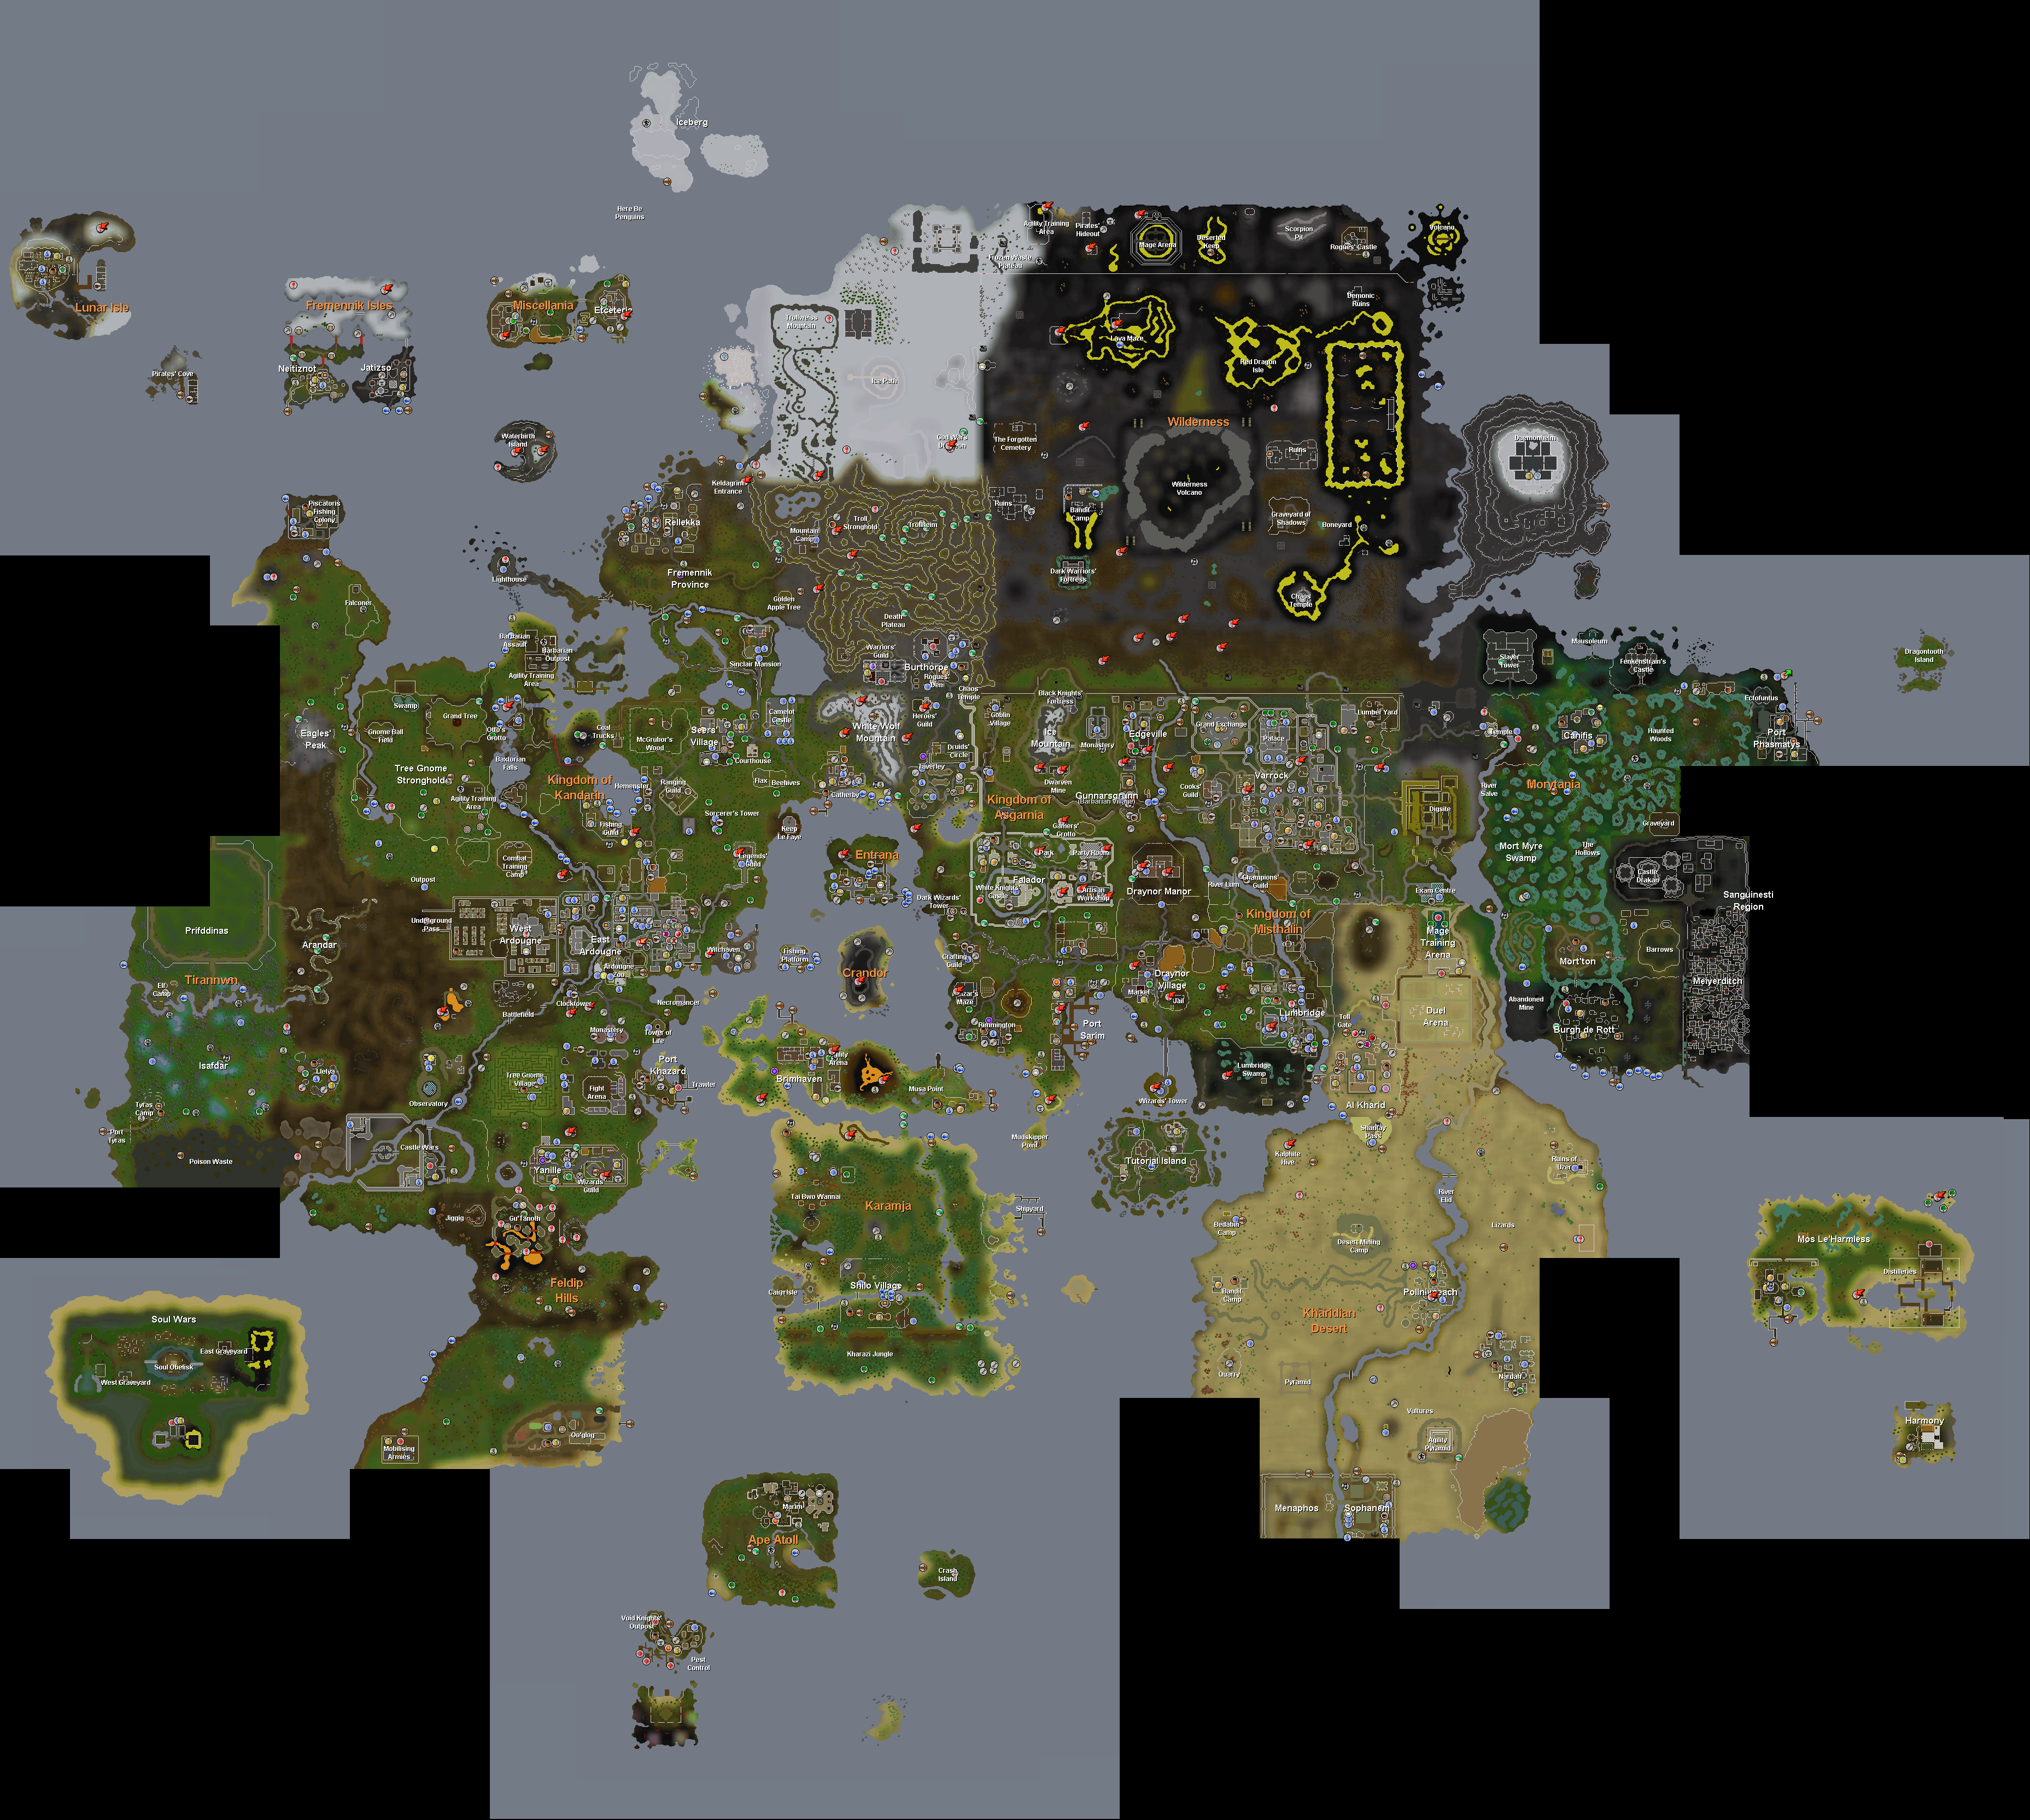 Image rs world map 11g runescape wiki fandom powered by rs world map 11g gumiabroncs Gallery